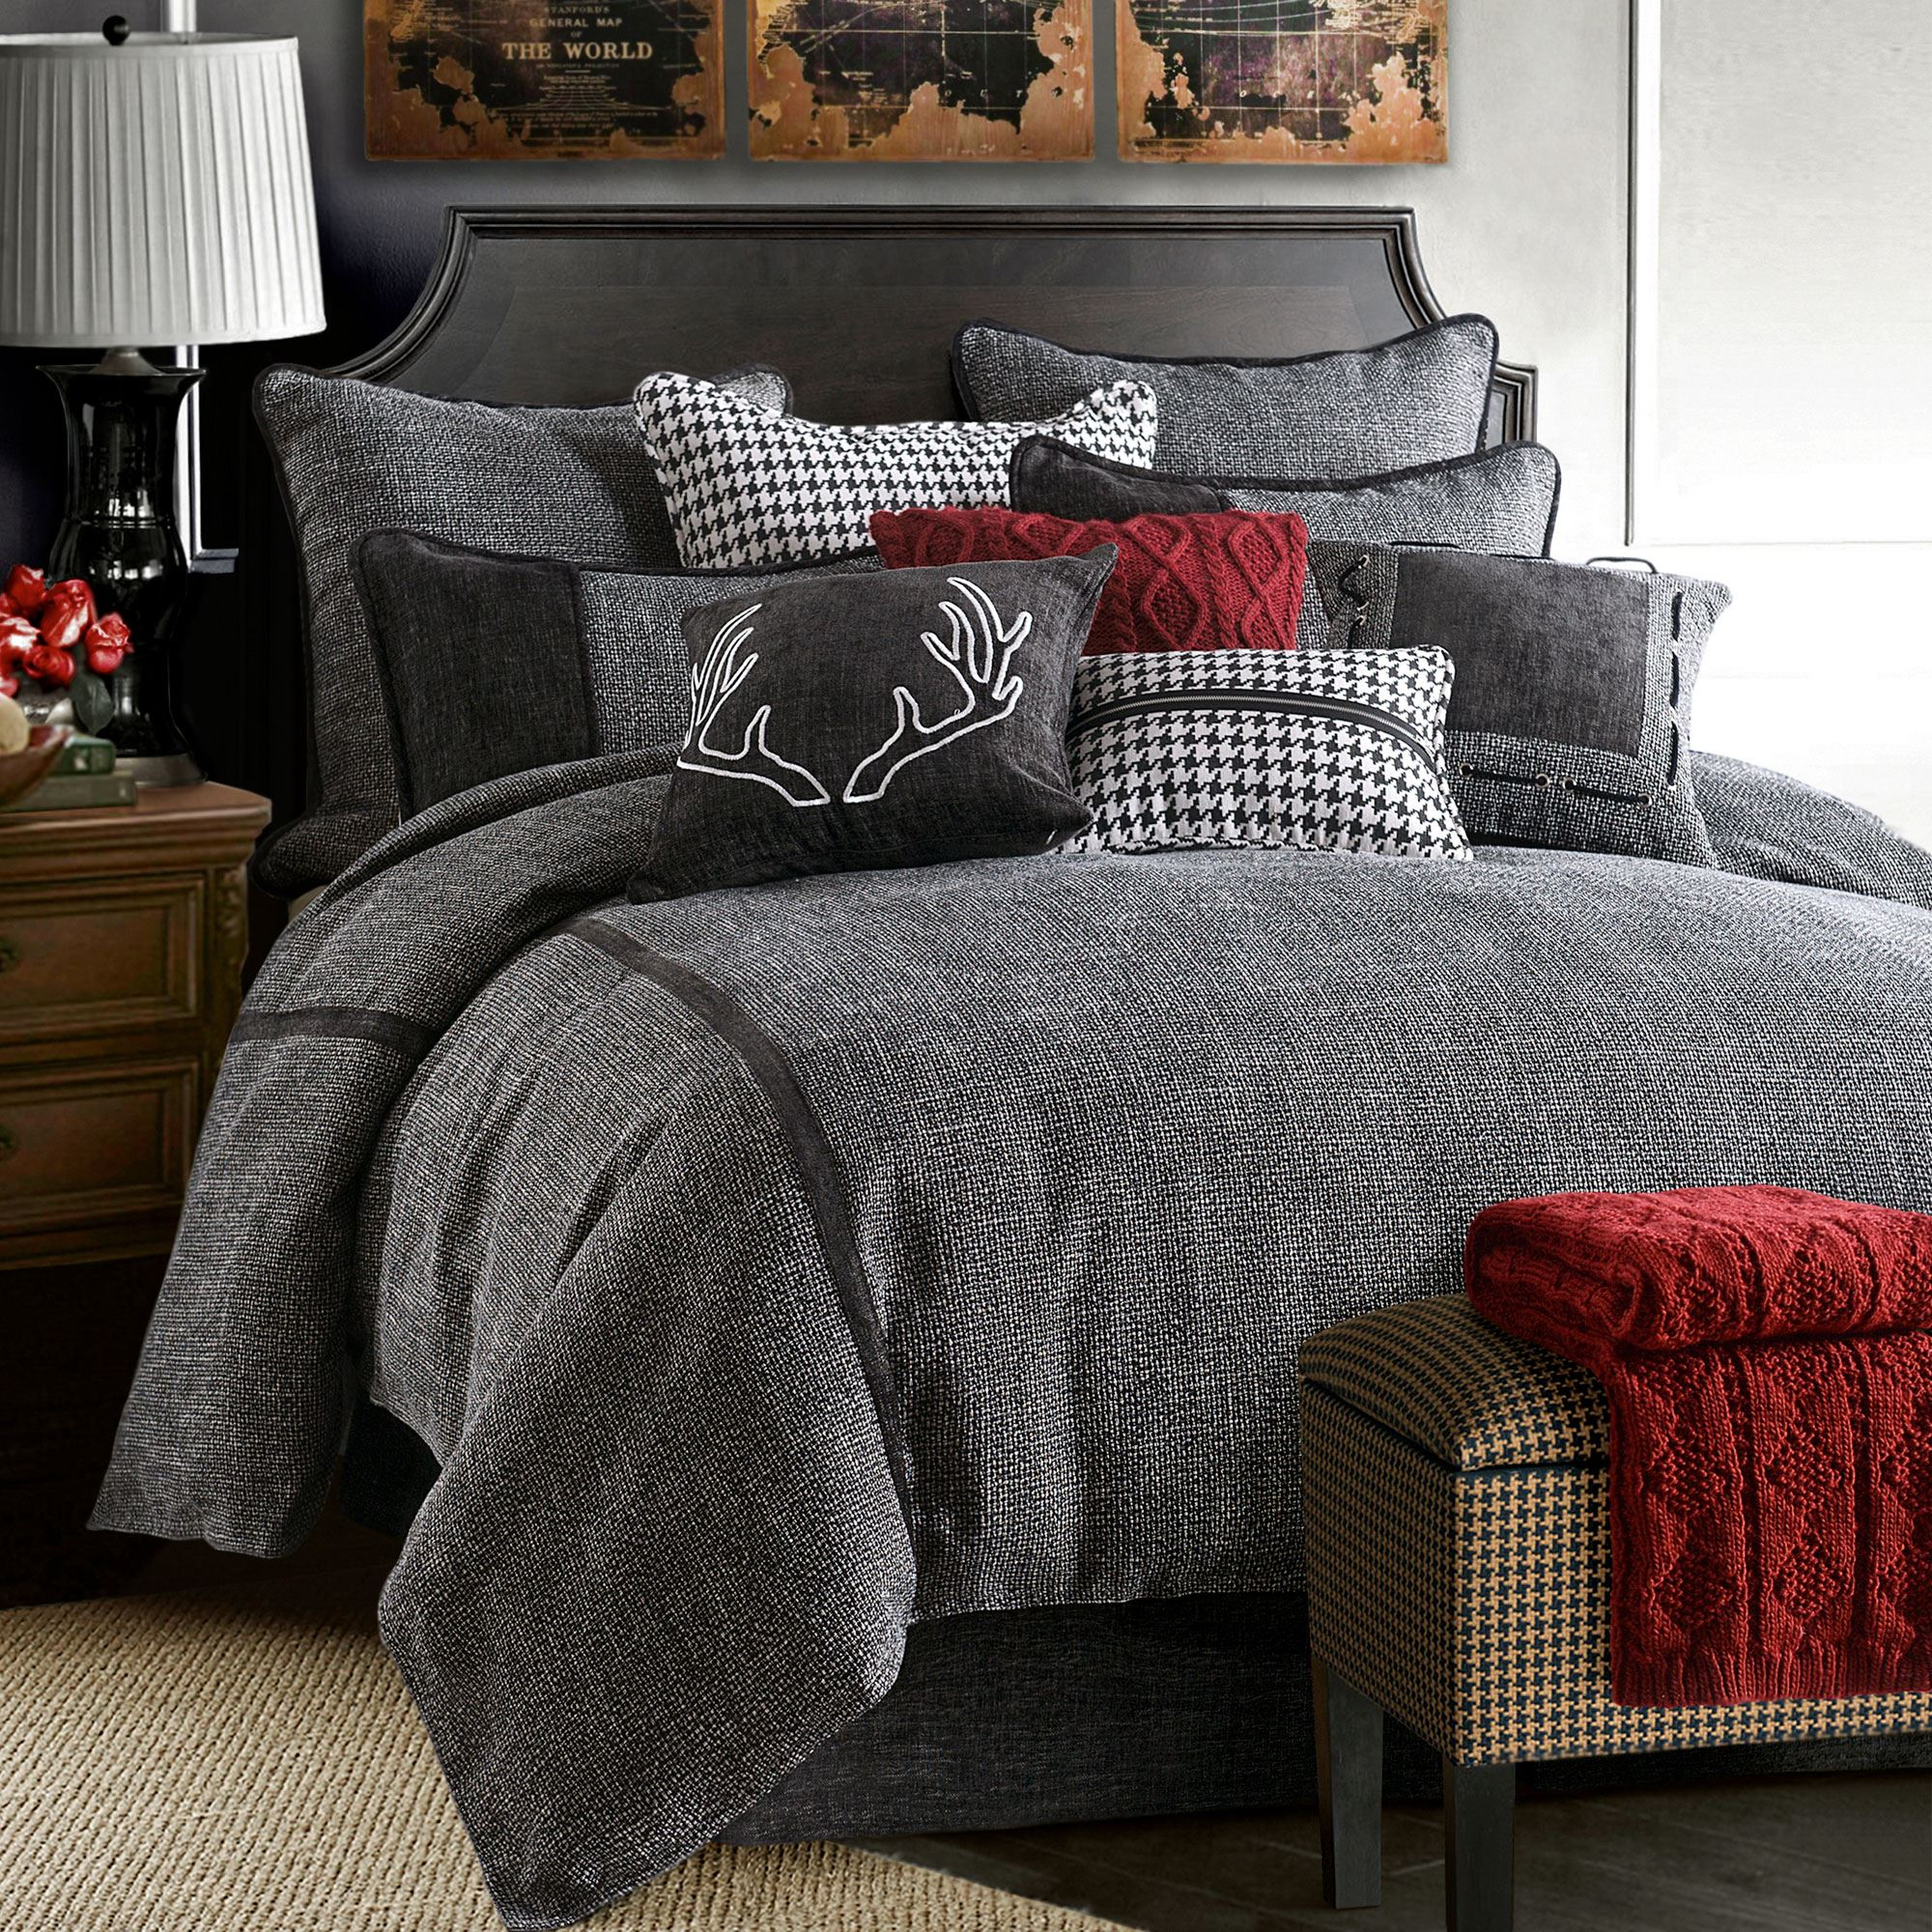 dark gray kmyehai amazing bedroom extraordinaryedroom category delectable sets greyedspread sheet pink delightful size comforters unflappable grey comforter set queen bedspread roomedding bedding and greyeen voodoolk sizeilt with living cover